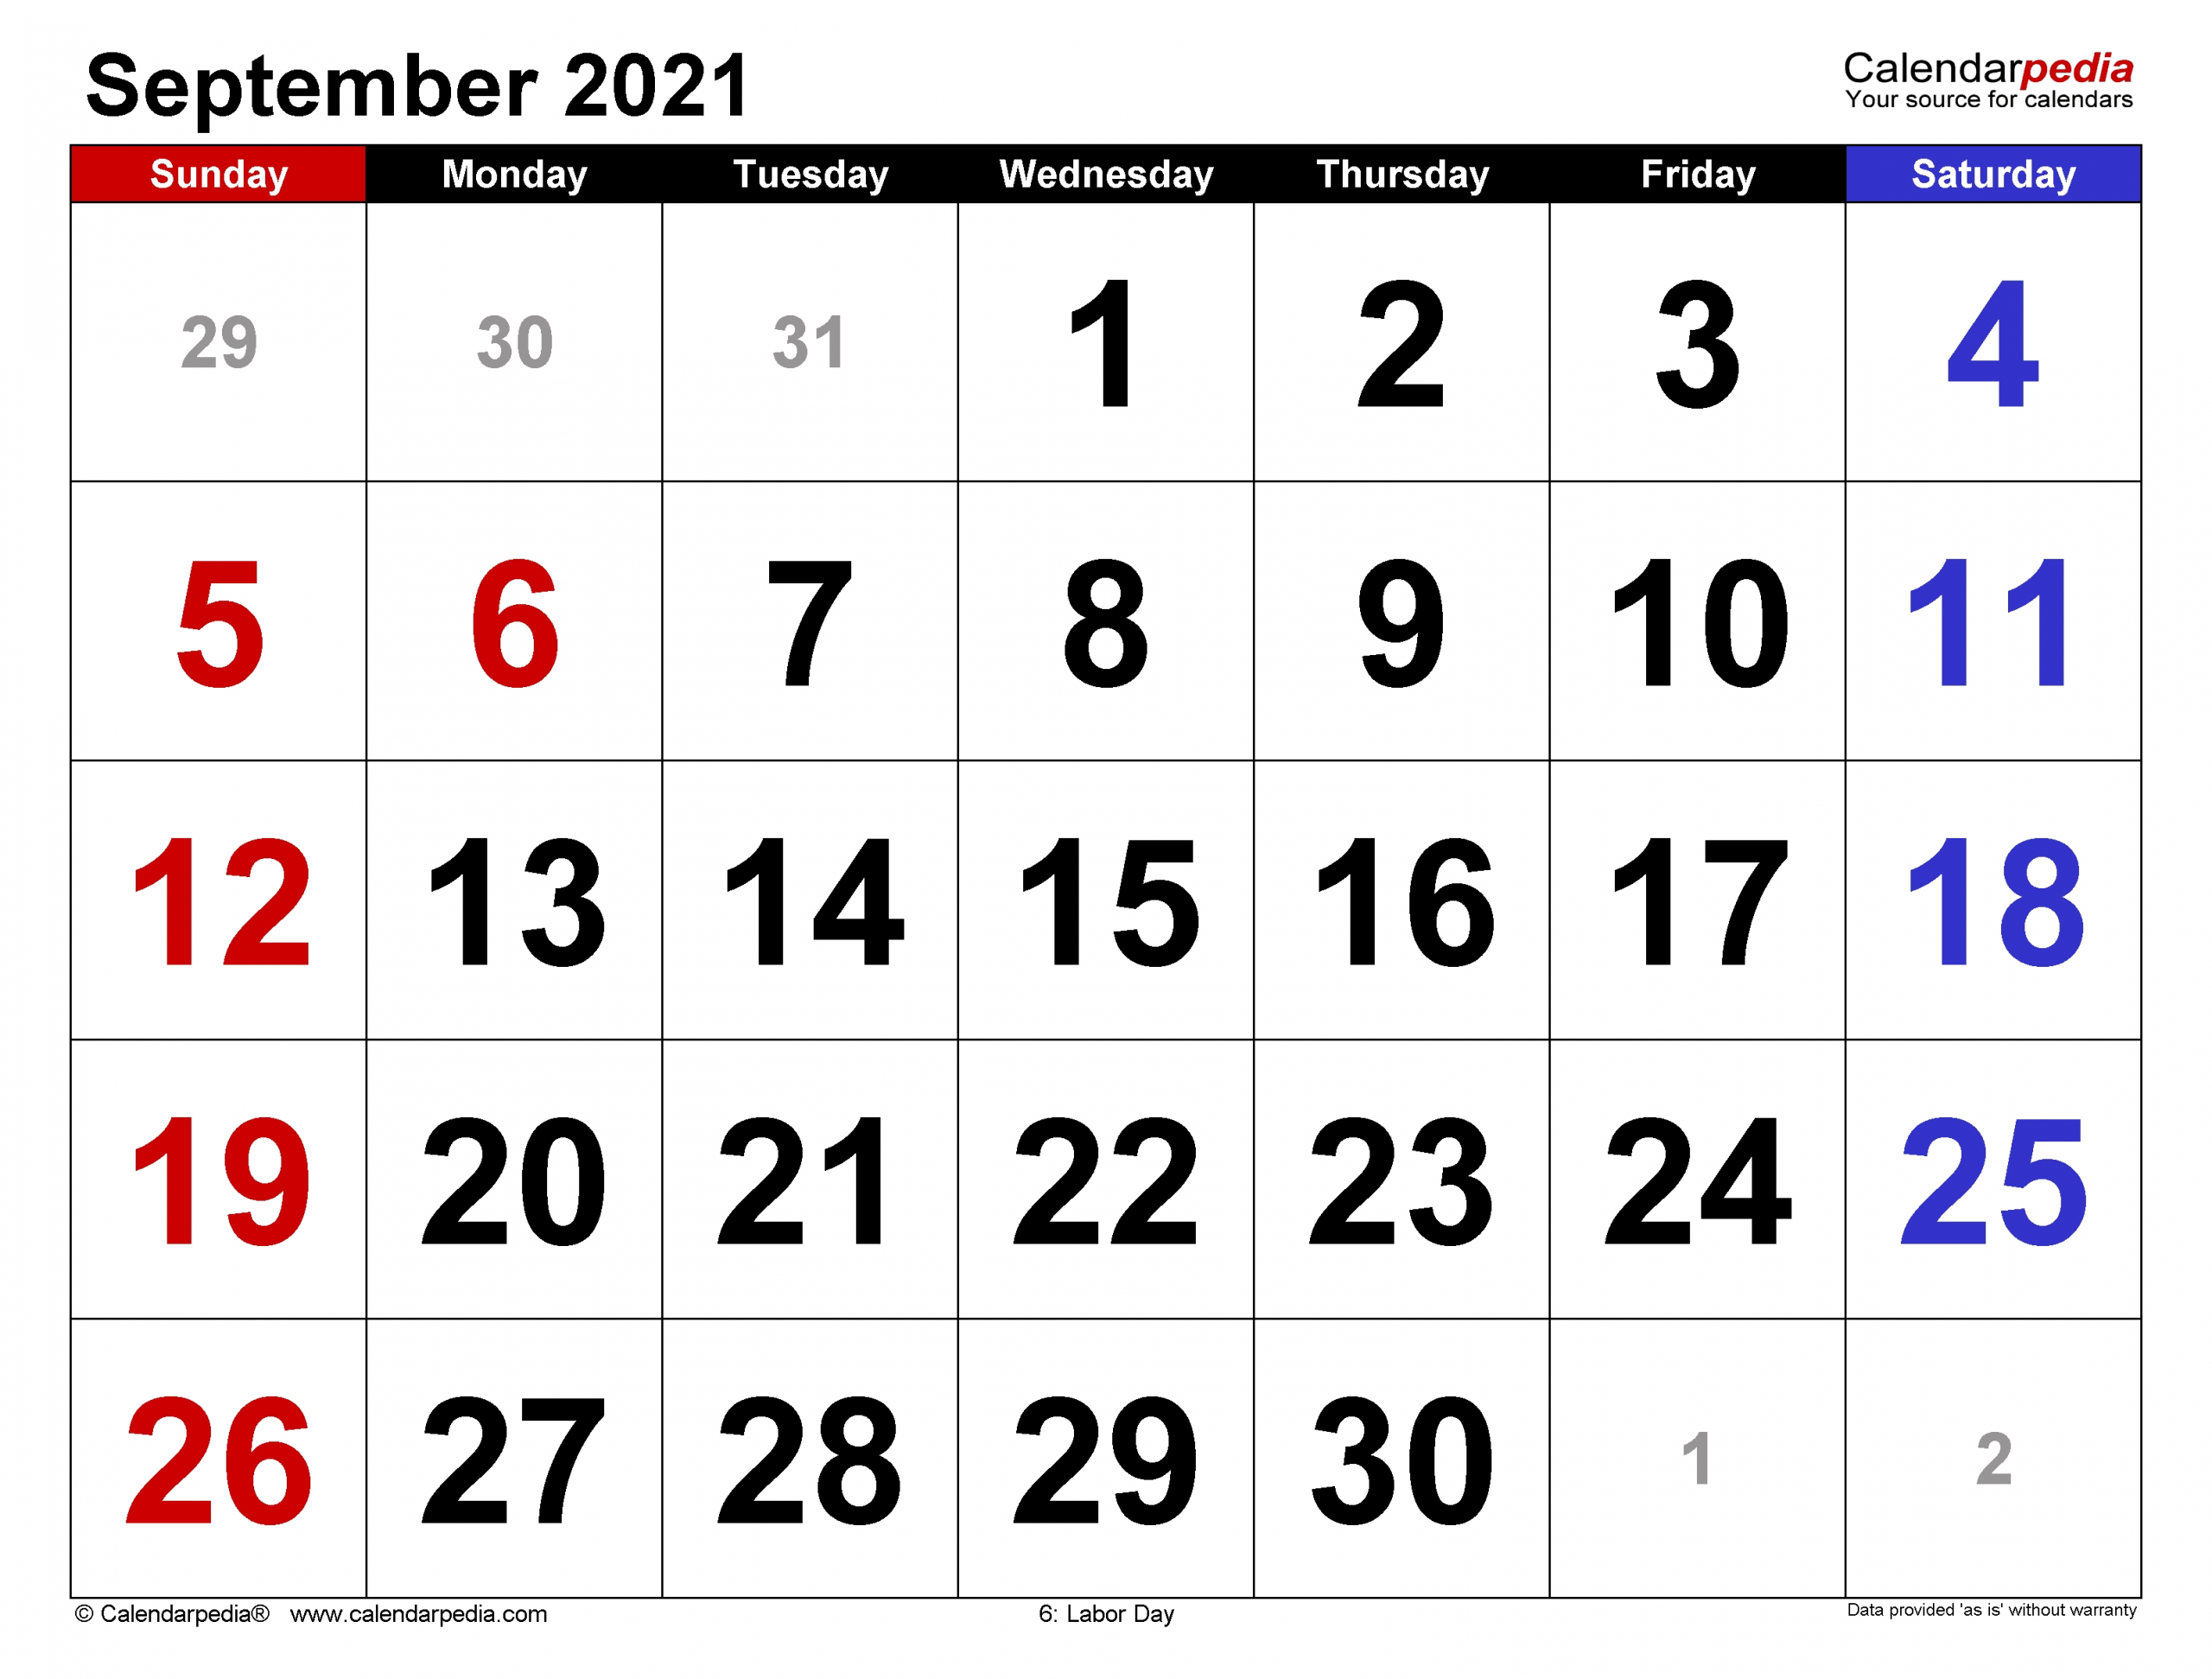 Catch Calendar For September 2021 With Large Numbers